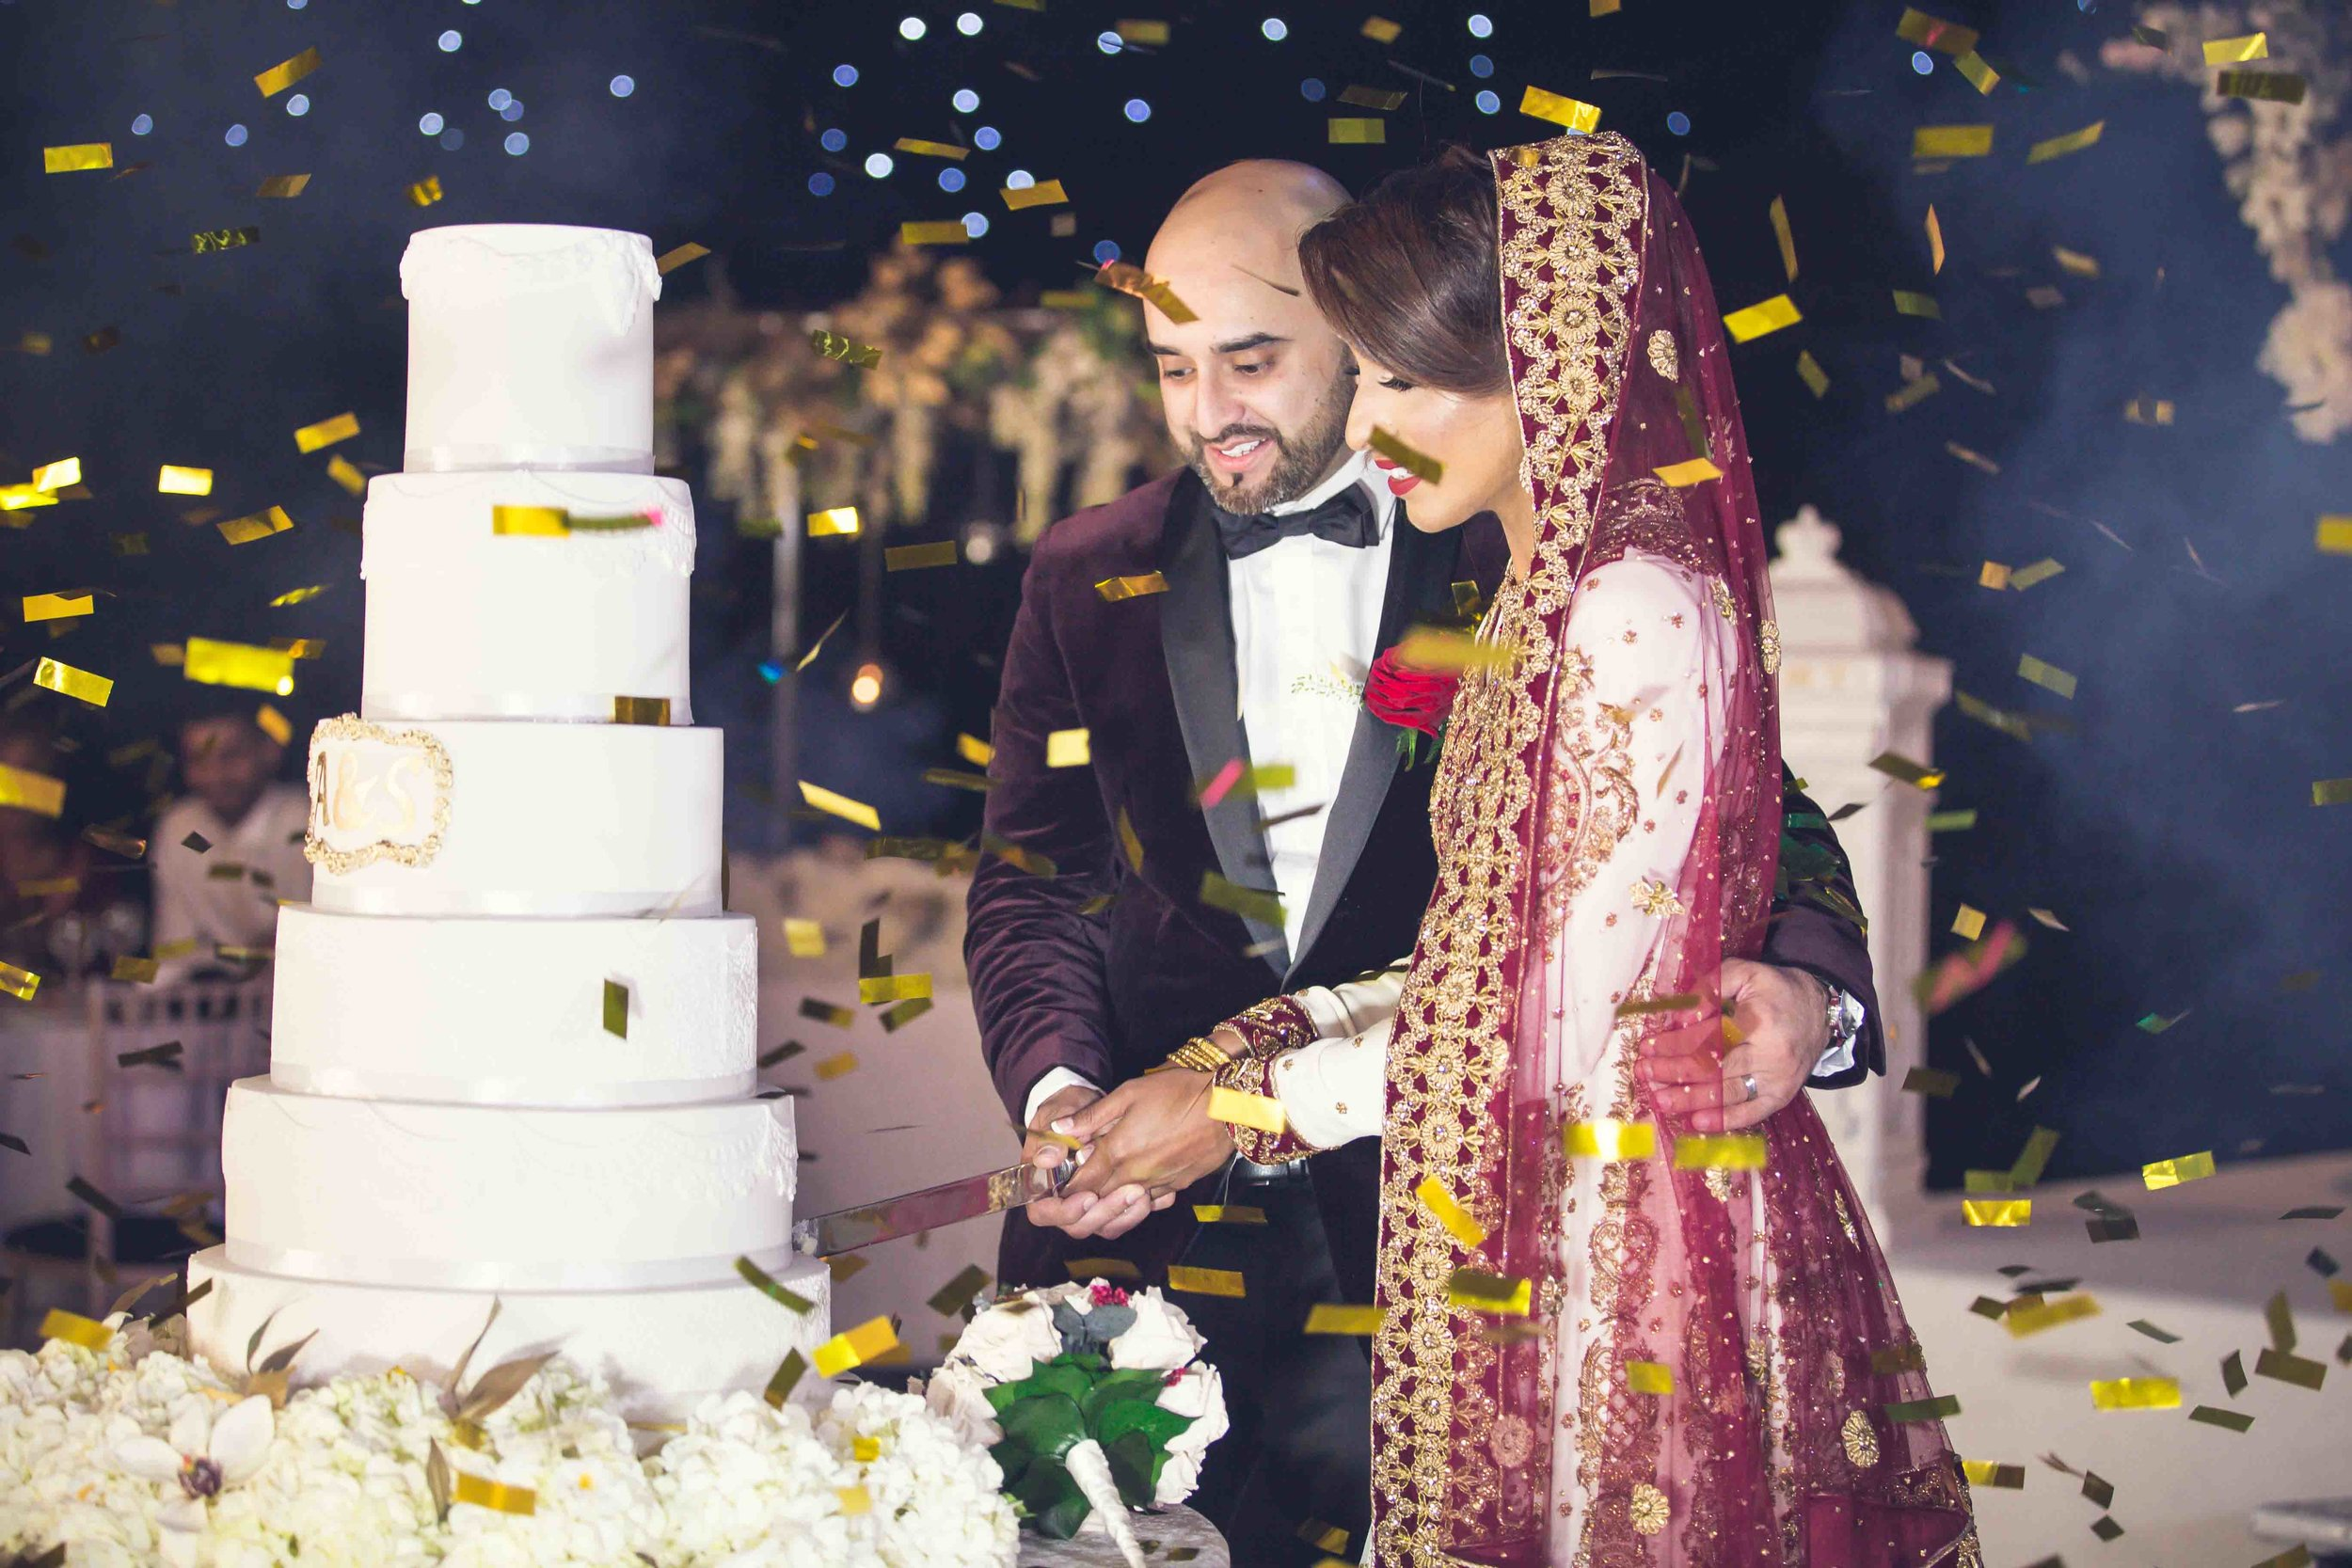 Asian Wedding Photographer Opu Sultan Photography Lyme Park Scotland Edinburgh Glasgow London Manchester Liverpool Birmingham Wedding Photos prewed shoot Azman & Saira Blog-109.jpg